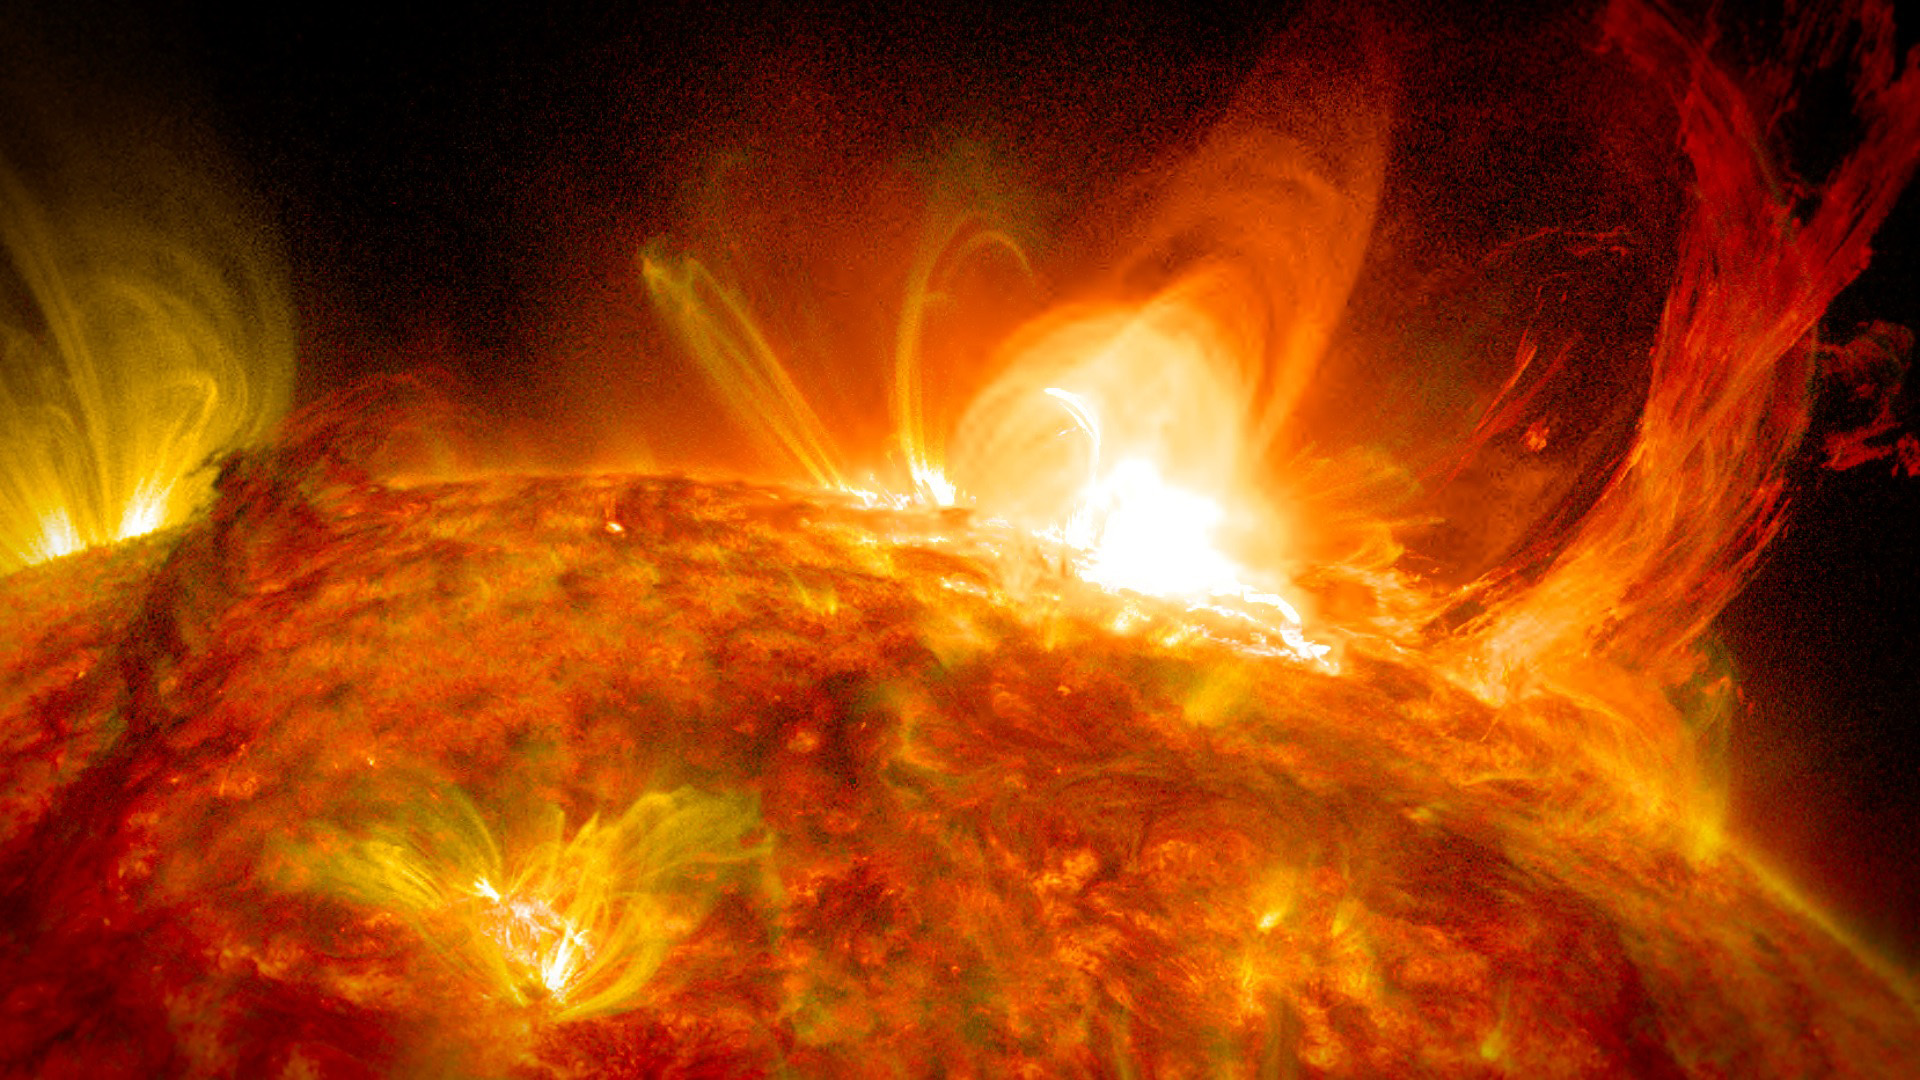 an introduction to solar flares violent eruptions above the sun surface Several groups of solar scientists are working on these problems, trying to plug in real data from sun-observing satellites to improve their models the ultimate goal is to predict solar flares and eruptions so we and our satellites aren't caught off guard the next time the sun hurls radiation our way.